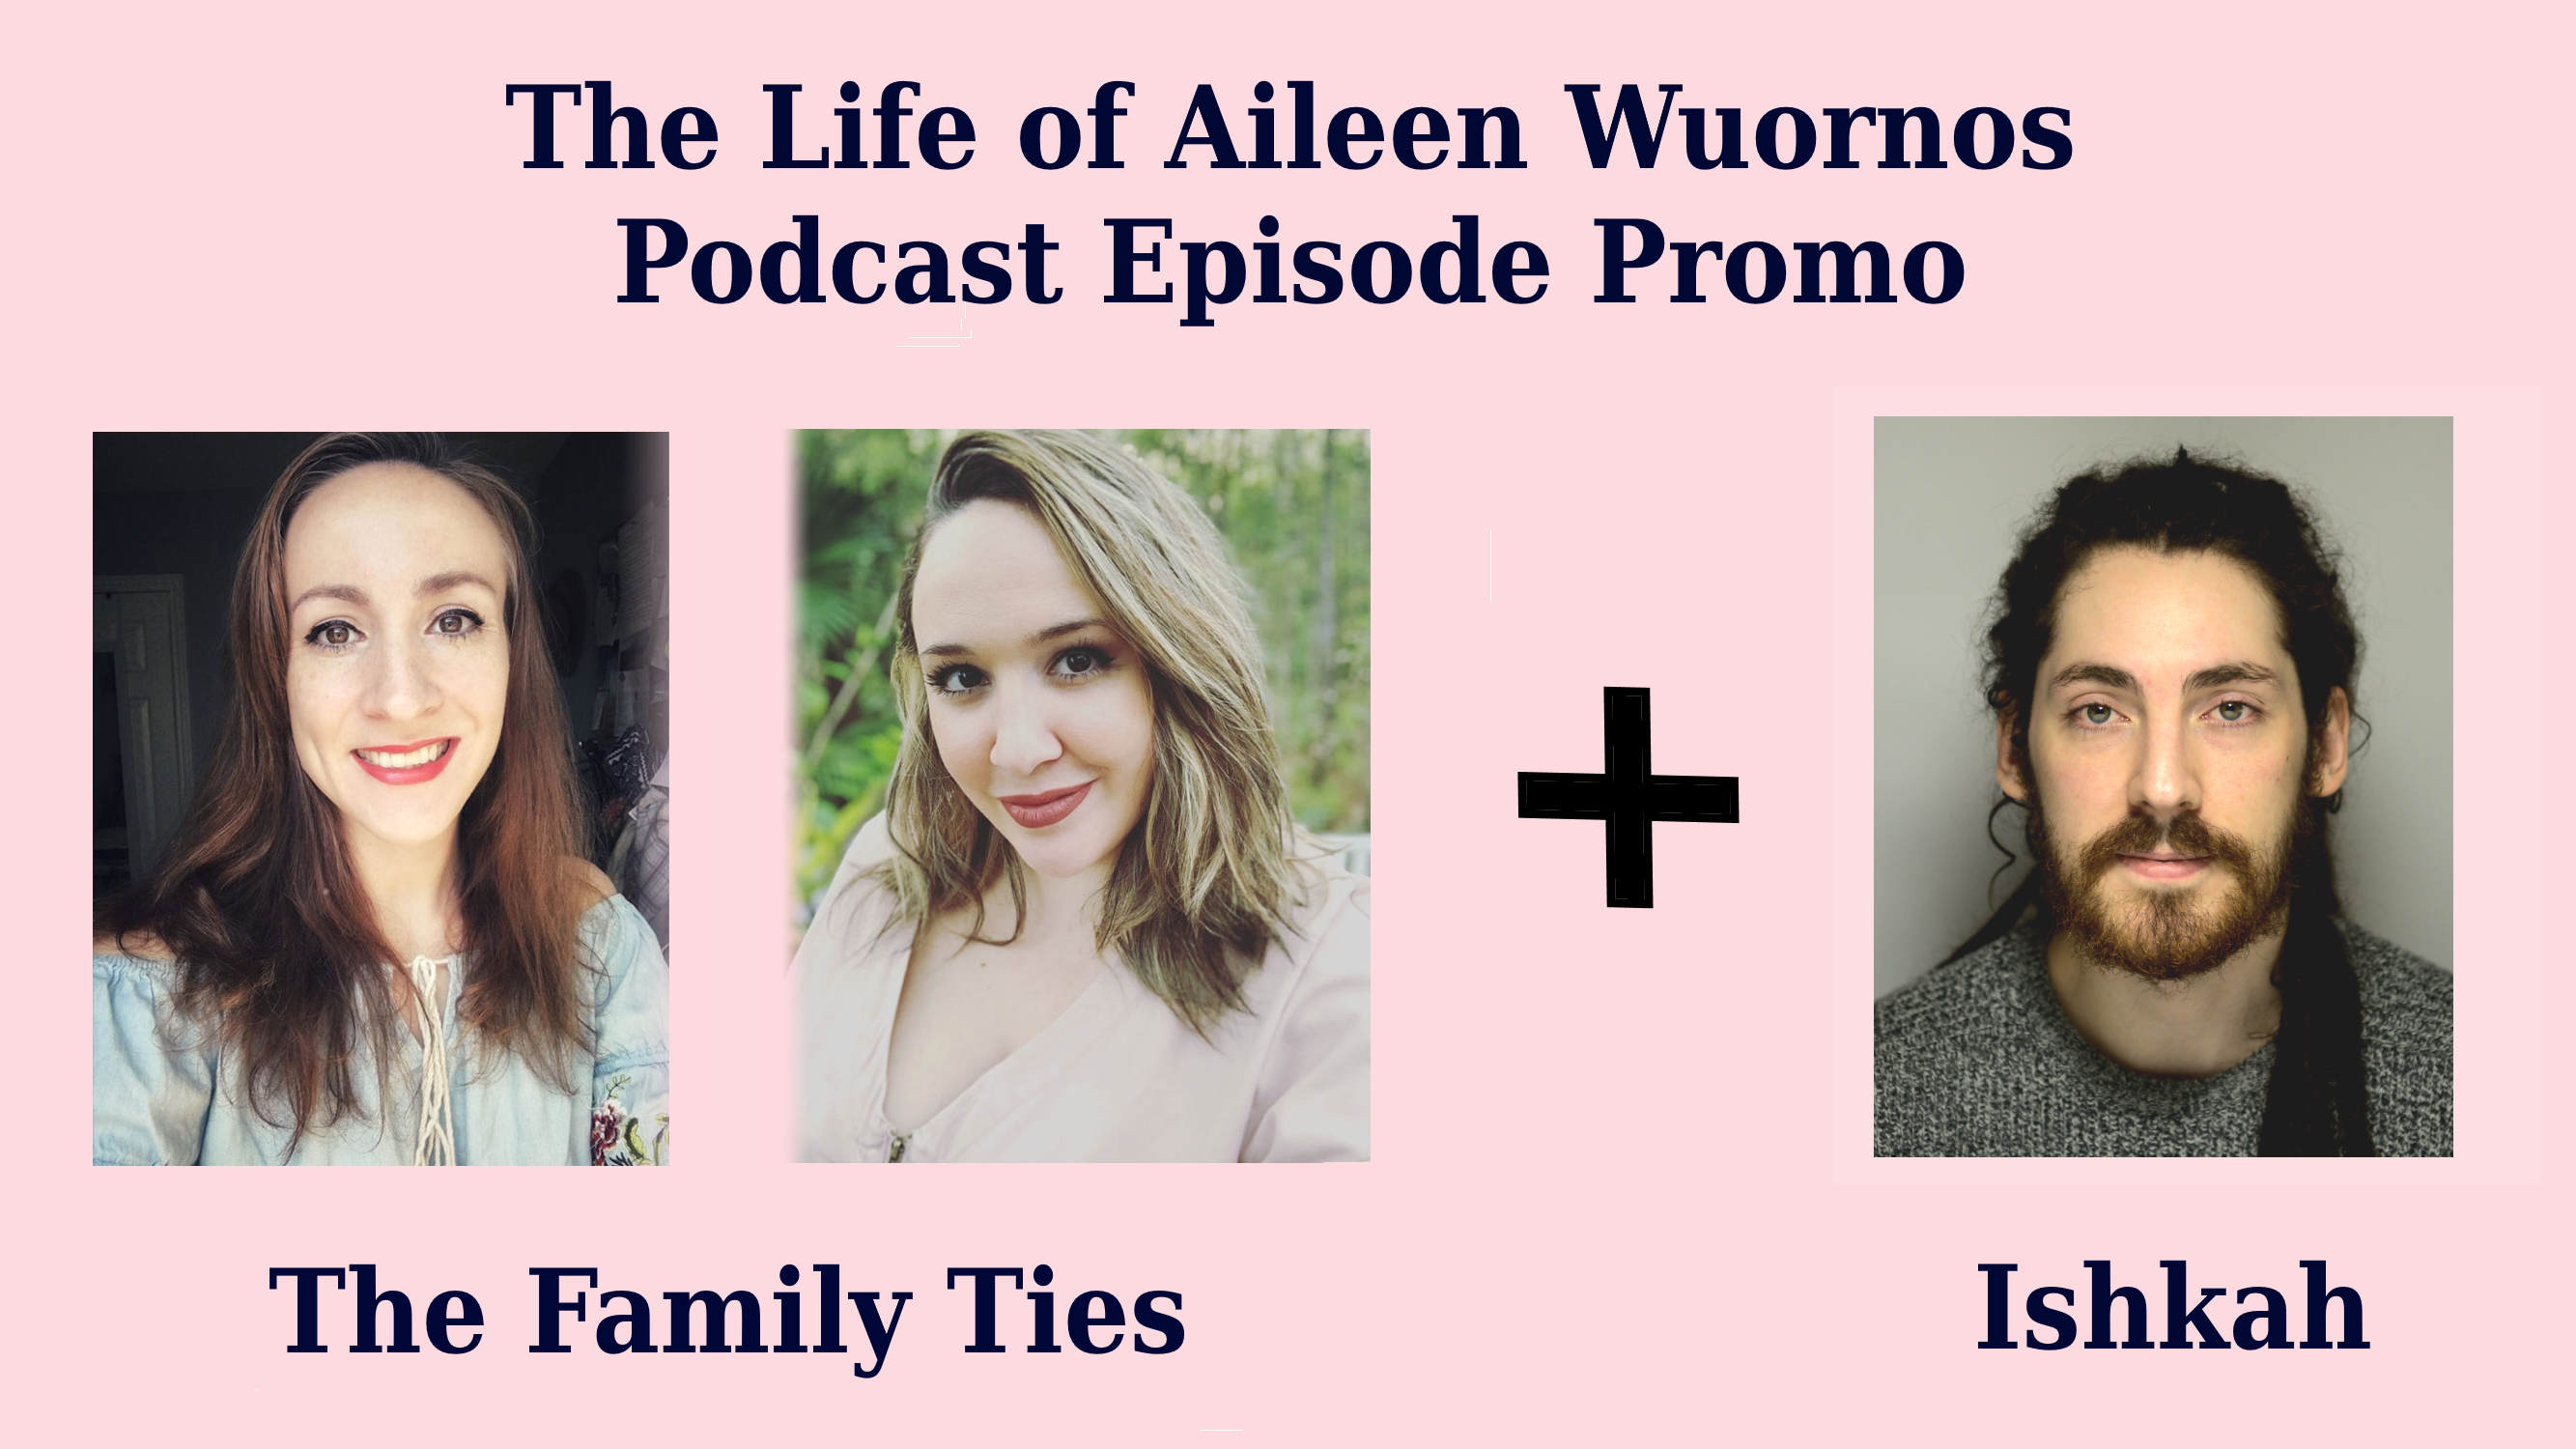 The Life of Aileen Wuornos Podcast Episode Promo